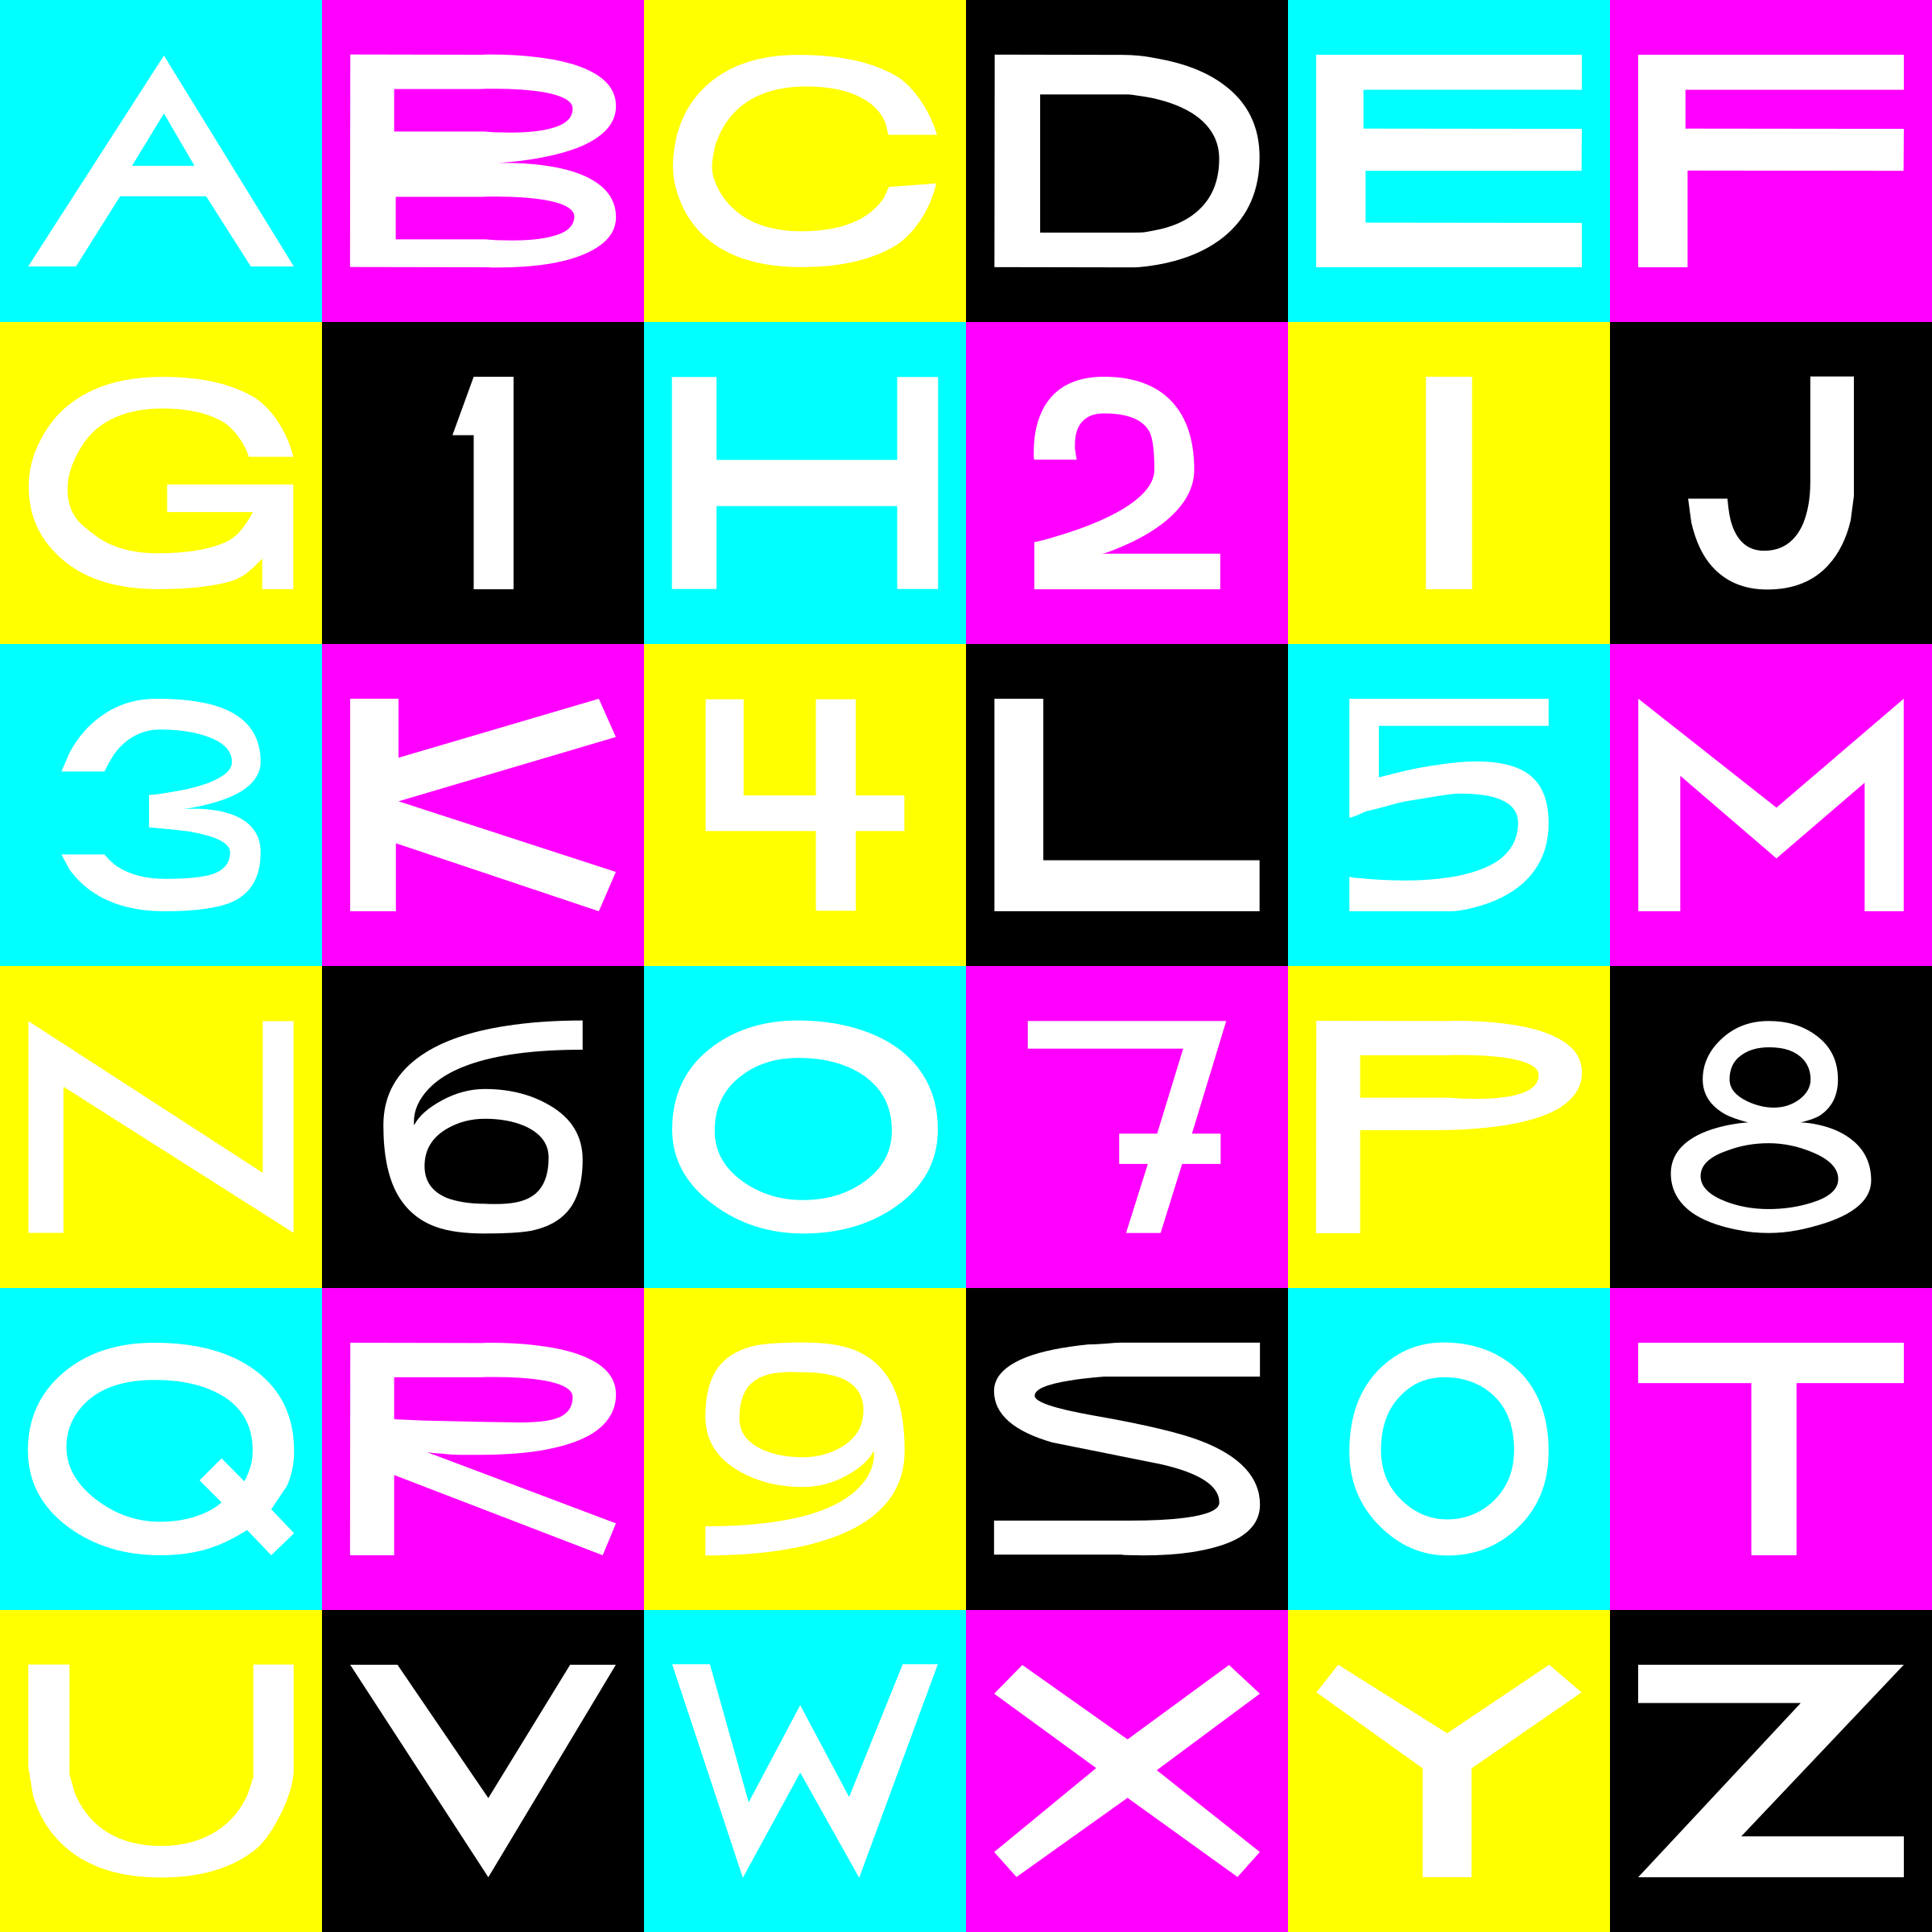 CMYK basic letters/numbers grid (mouseyer font) by dabnotu